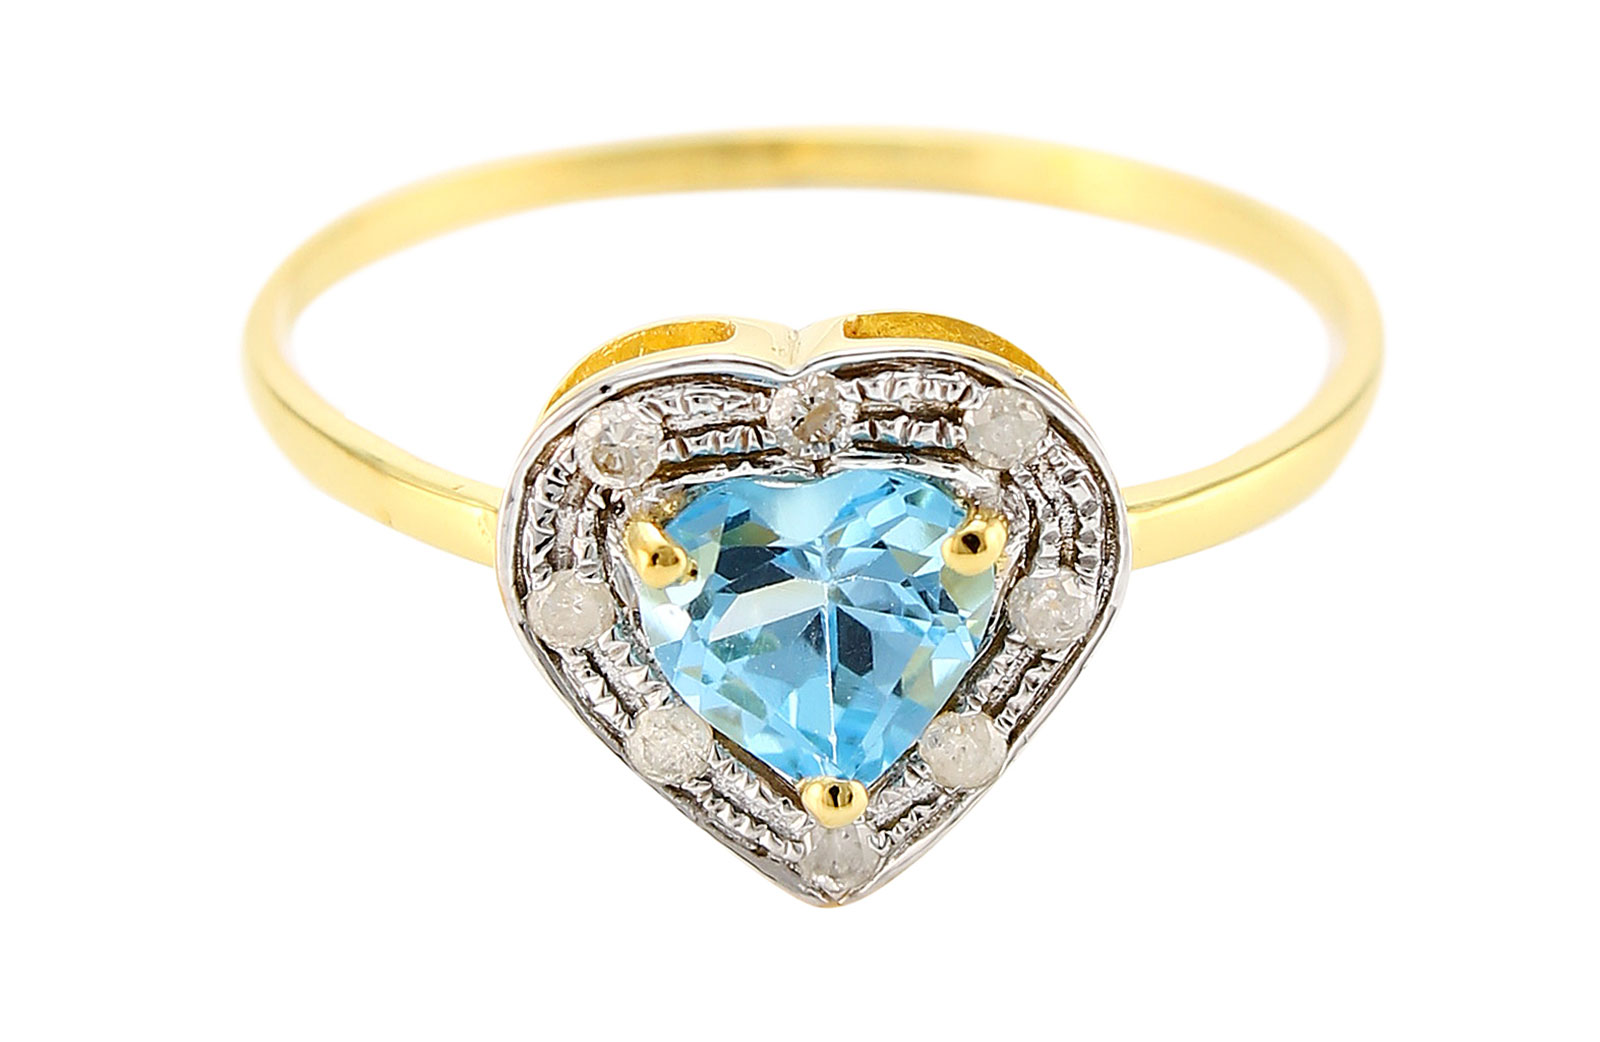 VP Jewels 18K Solid Yellow Gold 0.6CT Genuine Heart Cut Topaz 0.08ct Genuine Diamonds Ring - 6.5 US